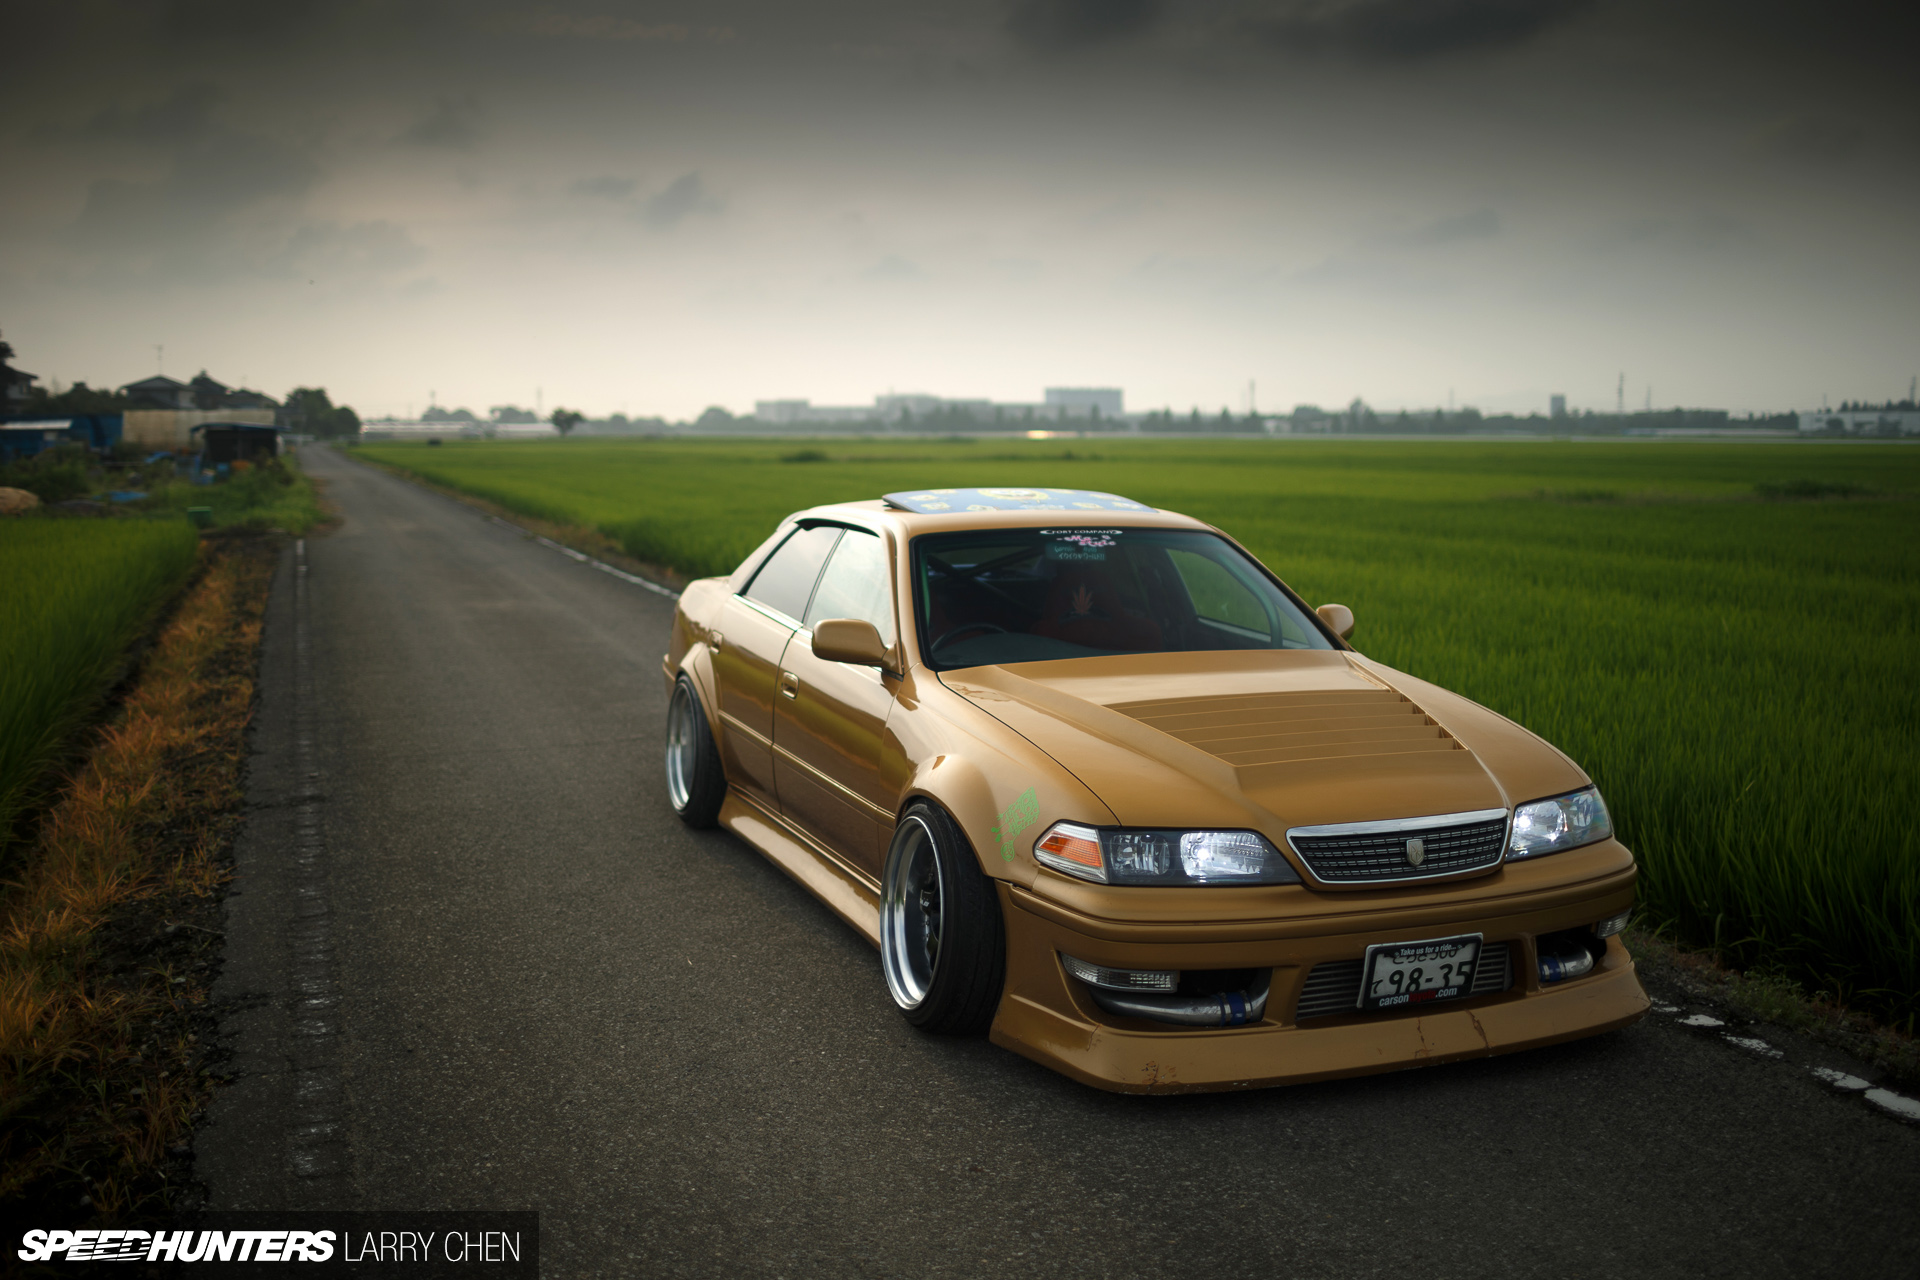 Sedan King The N Style Customs Jzx100 Mark Ii Speedhunters